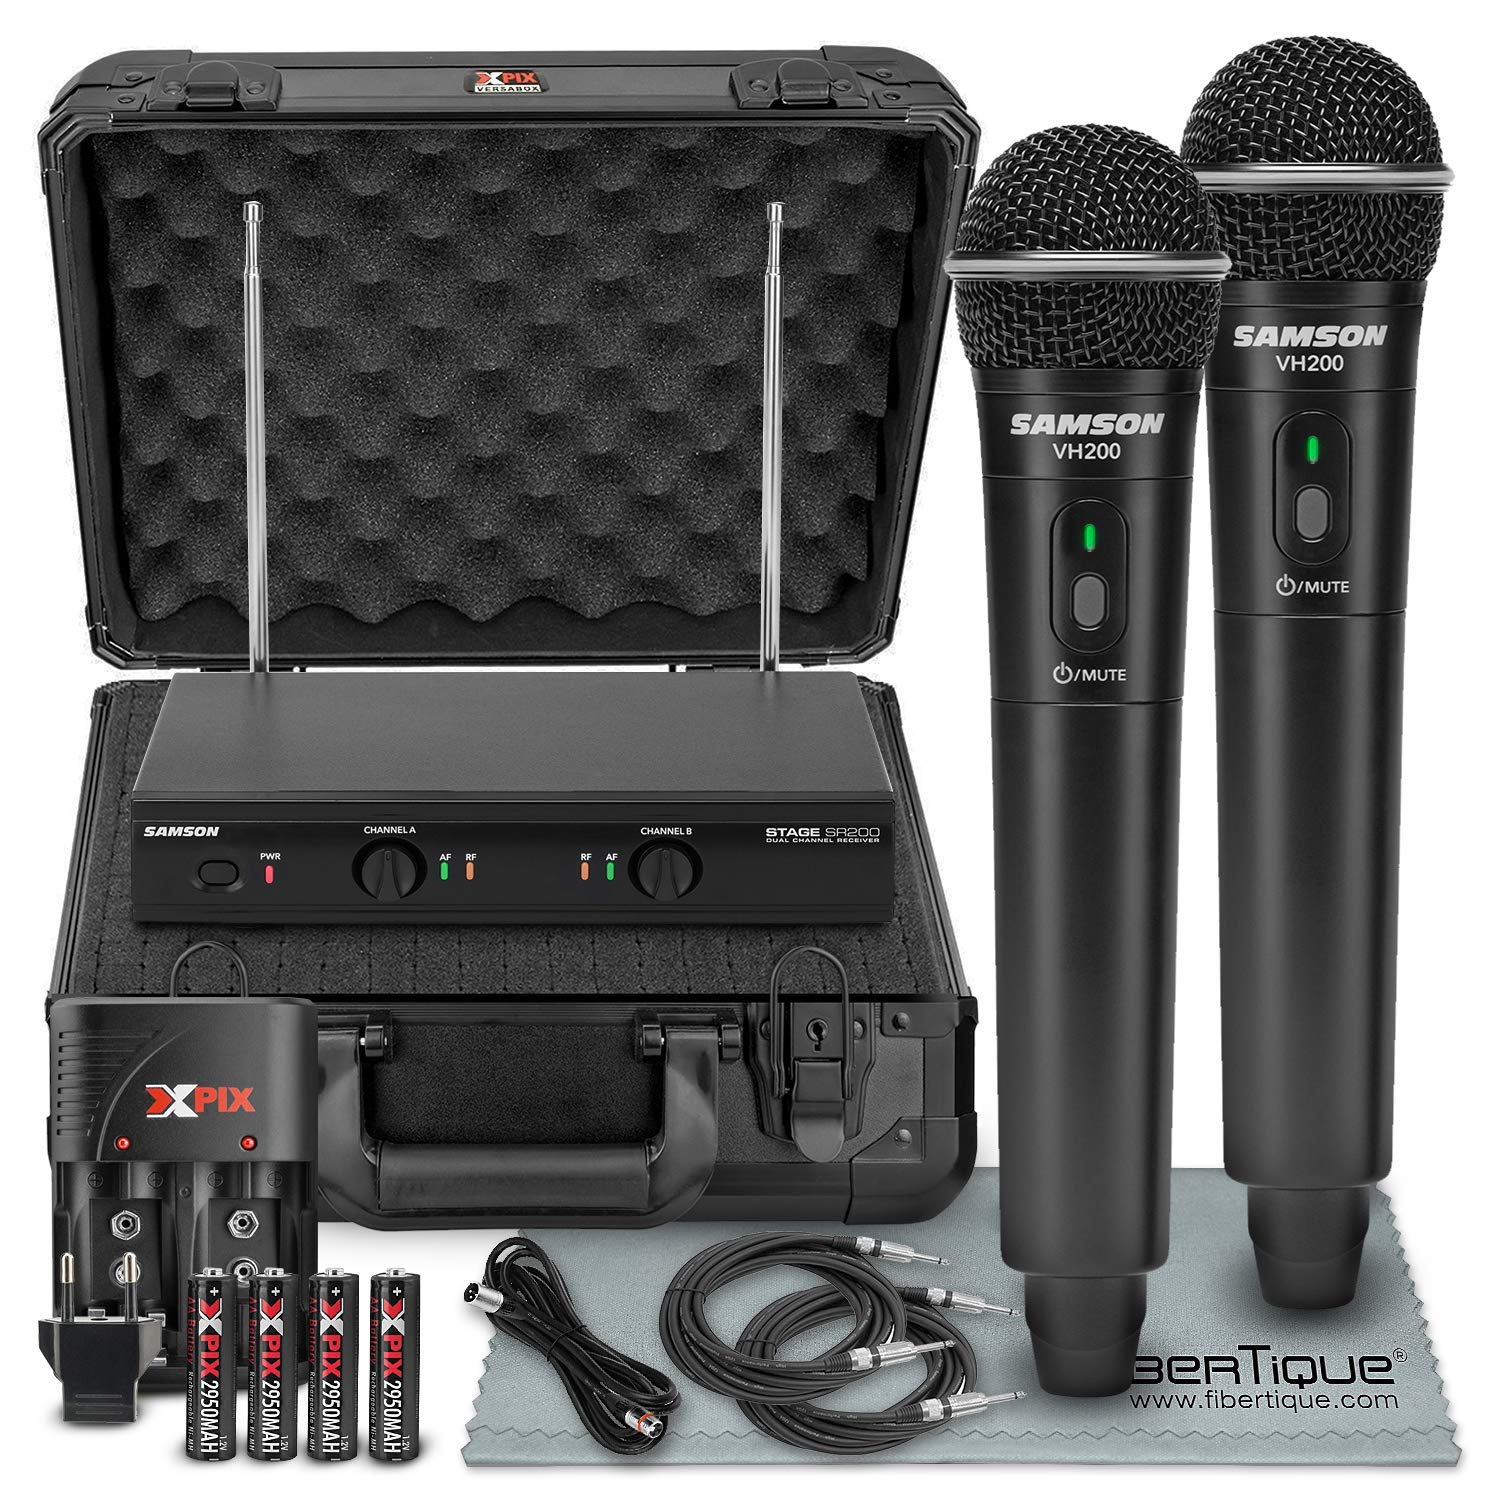 Samson Stage 200 - Dual-Channel Handheld VHF Wireless System (Channel D) W/ Deluxe Accessory Bundle and Hard Equipment Case + 2 X ??'' Cables + XLR Cable + FiberTique Cleaning Cloth by Samson Technologies